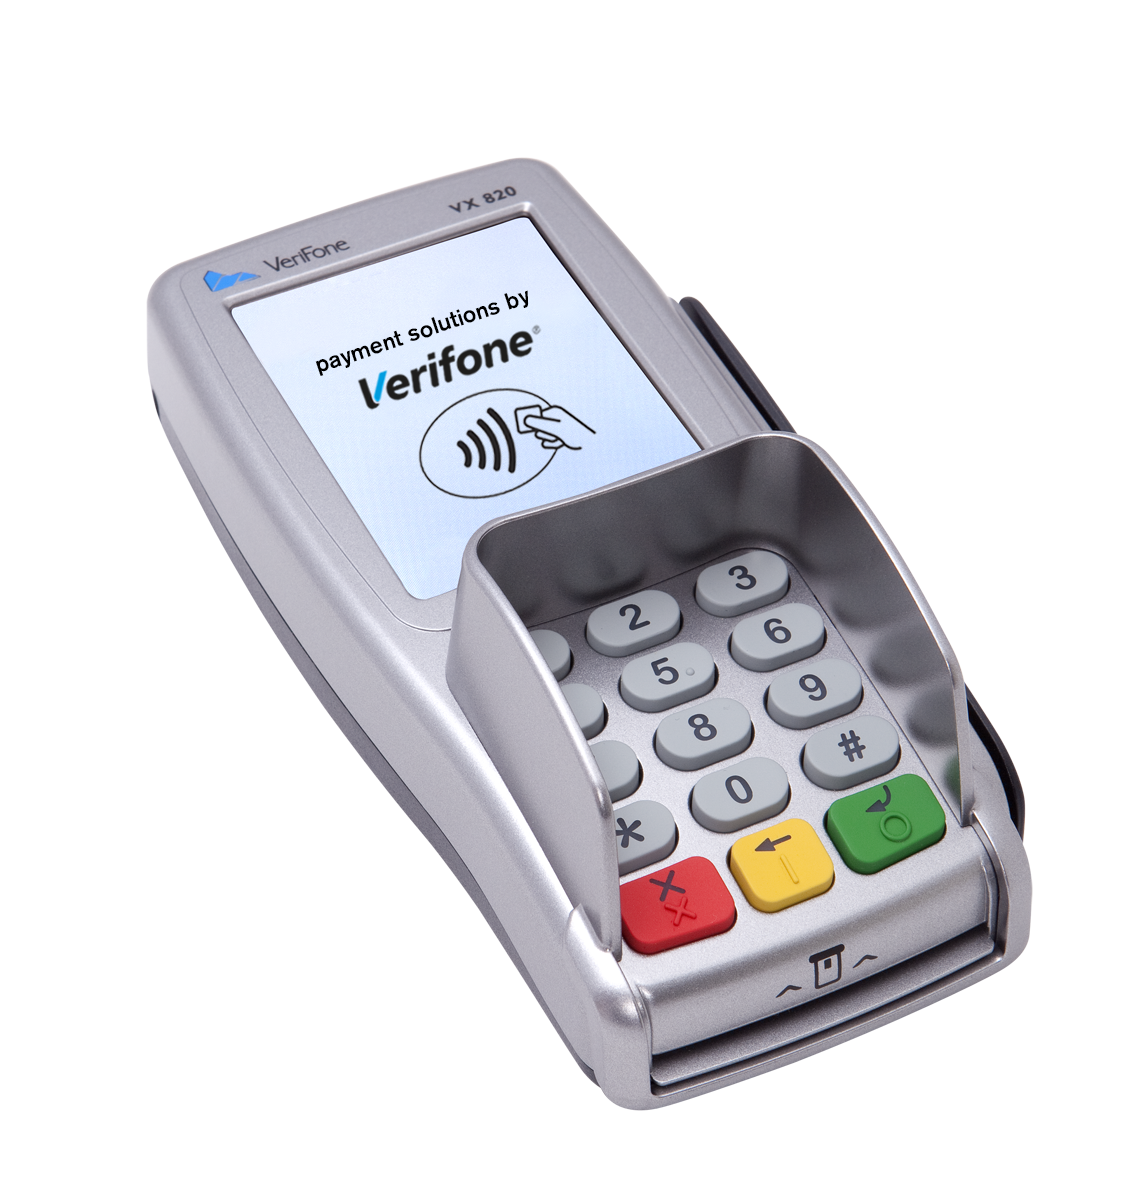 verifone vx 820 duet manual